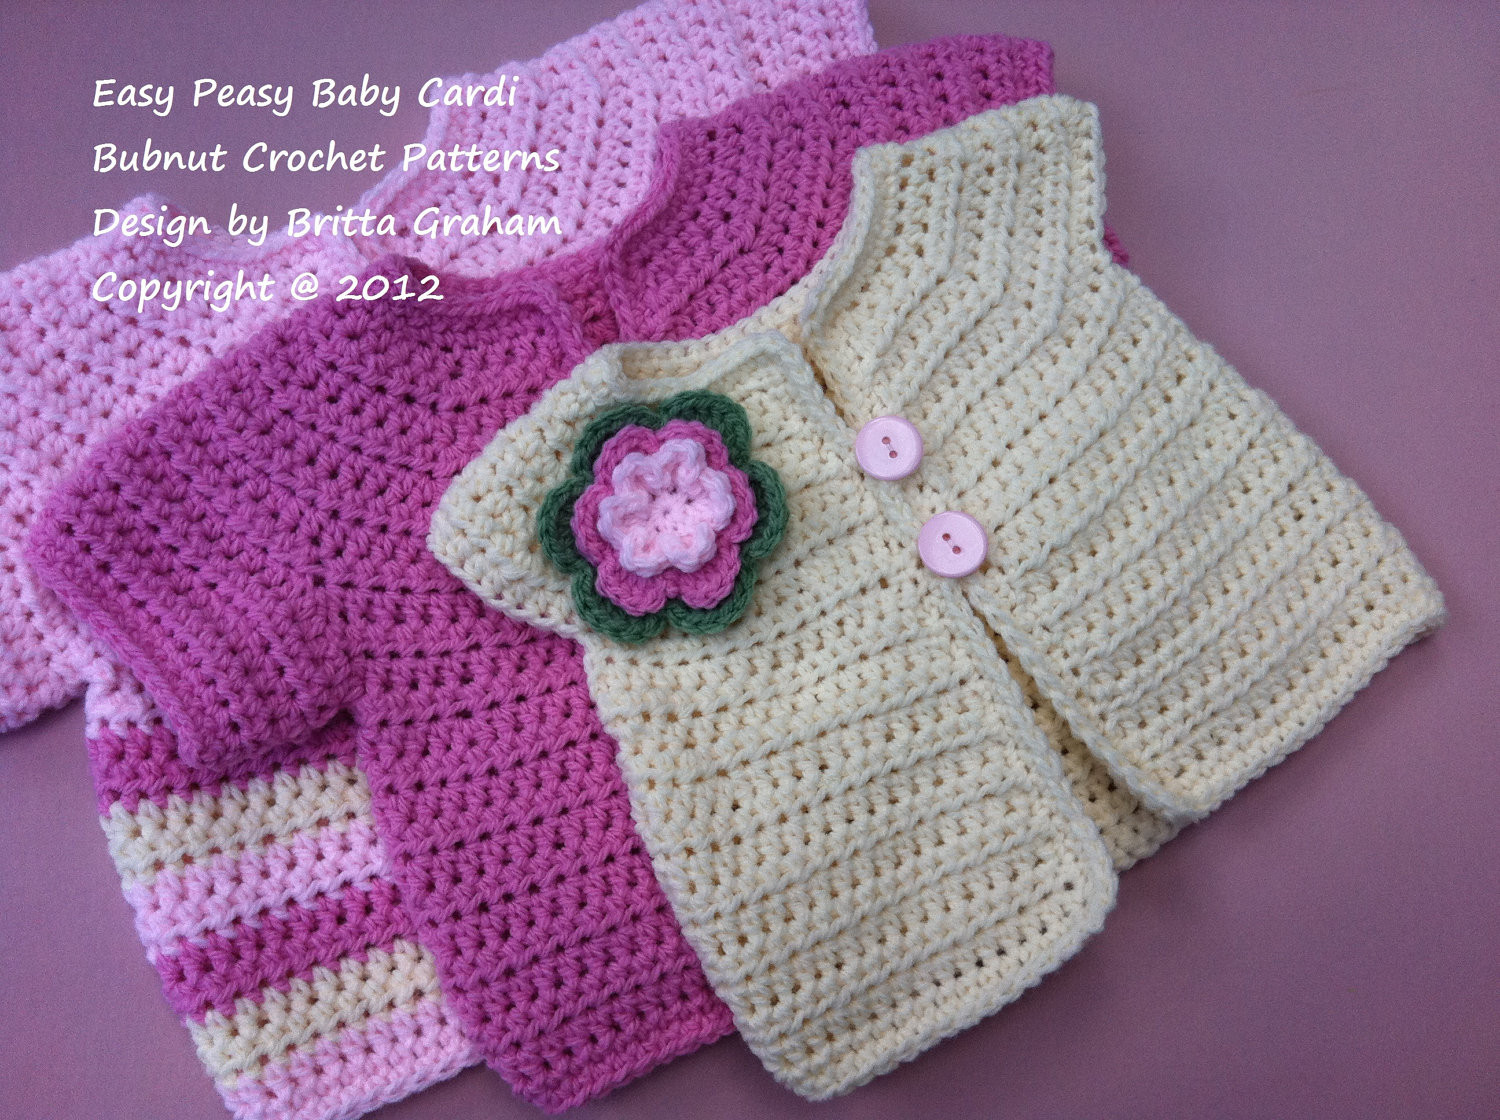 Crochet Baby Cardigan Pattern Awesome Easy Crochet Baby Sweater Pattern Free Of Luxury 44 Pictures Crochet Baby Cardigan Pattern